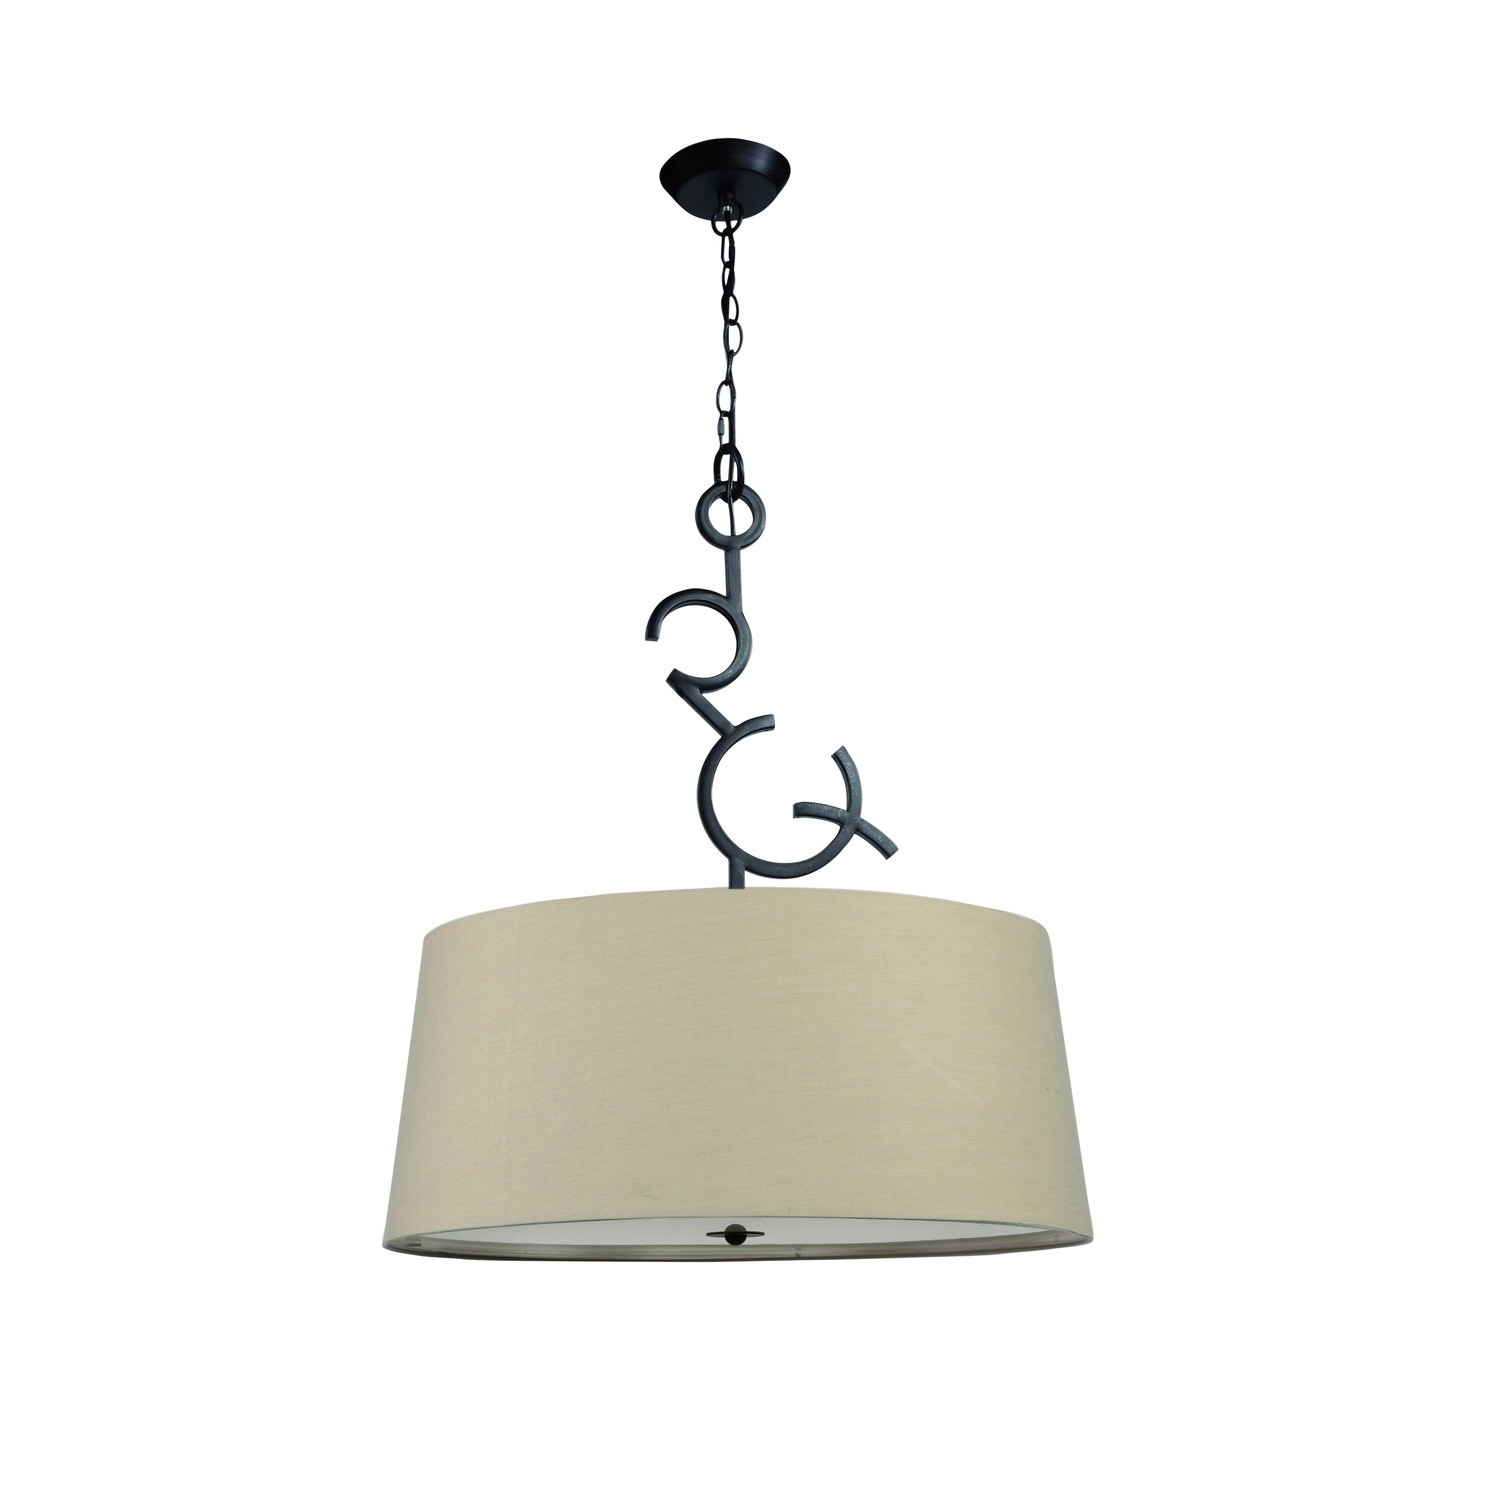 Argi Pendant 3 Light E27 Round With Taupe Shades Brown Oxide